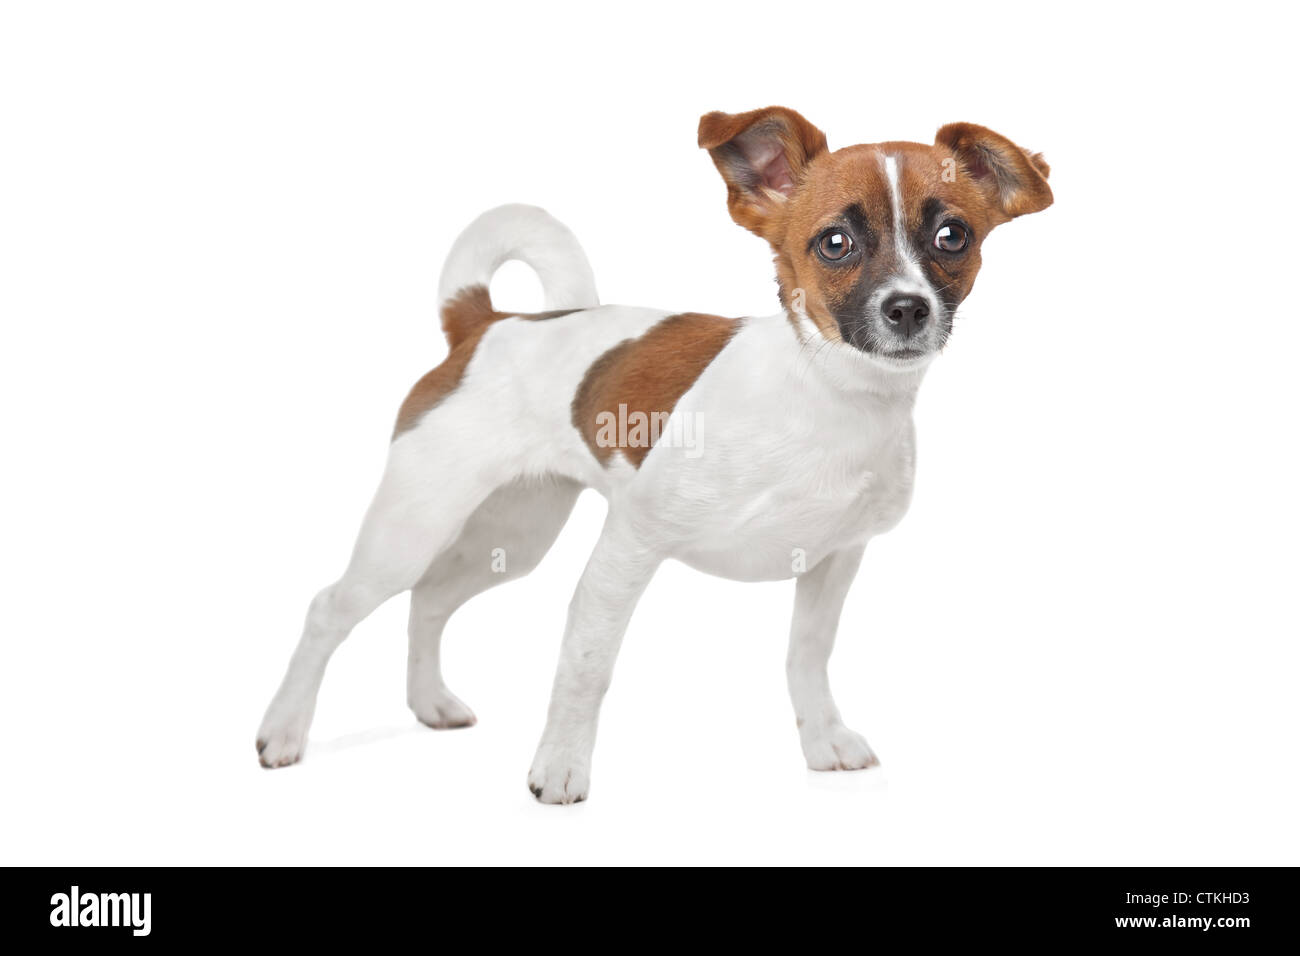 Mixed breed dog. Chihuahua and Jack Russel Terrier mix - Stock Image